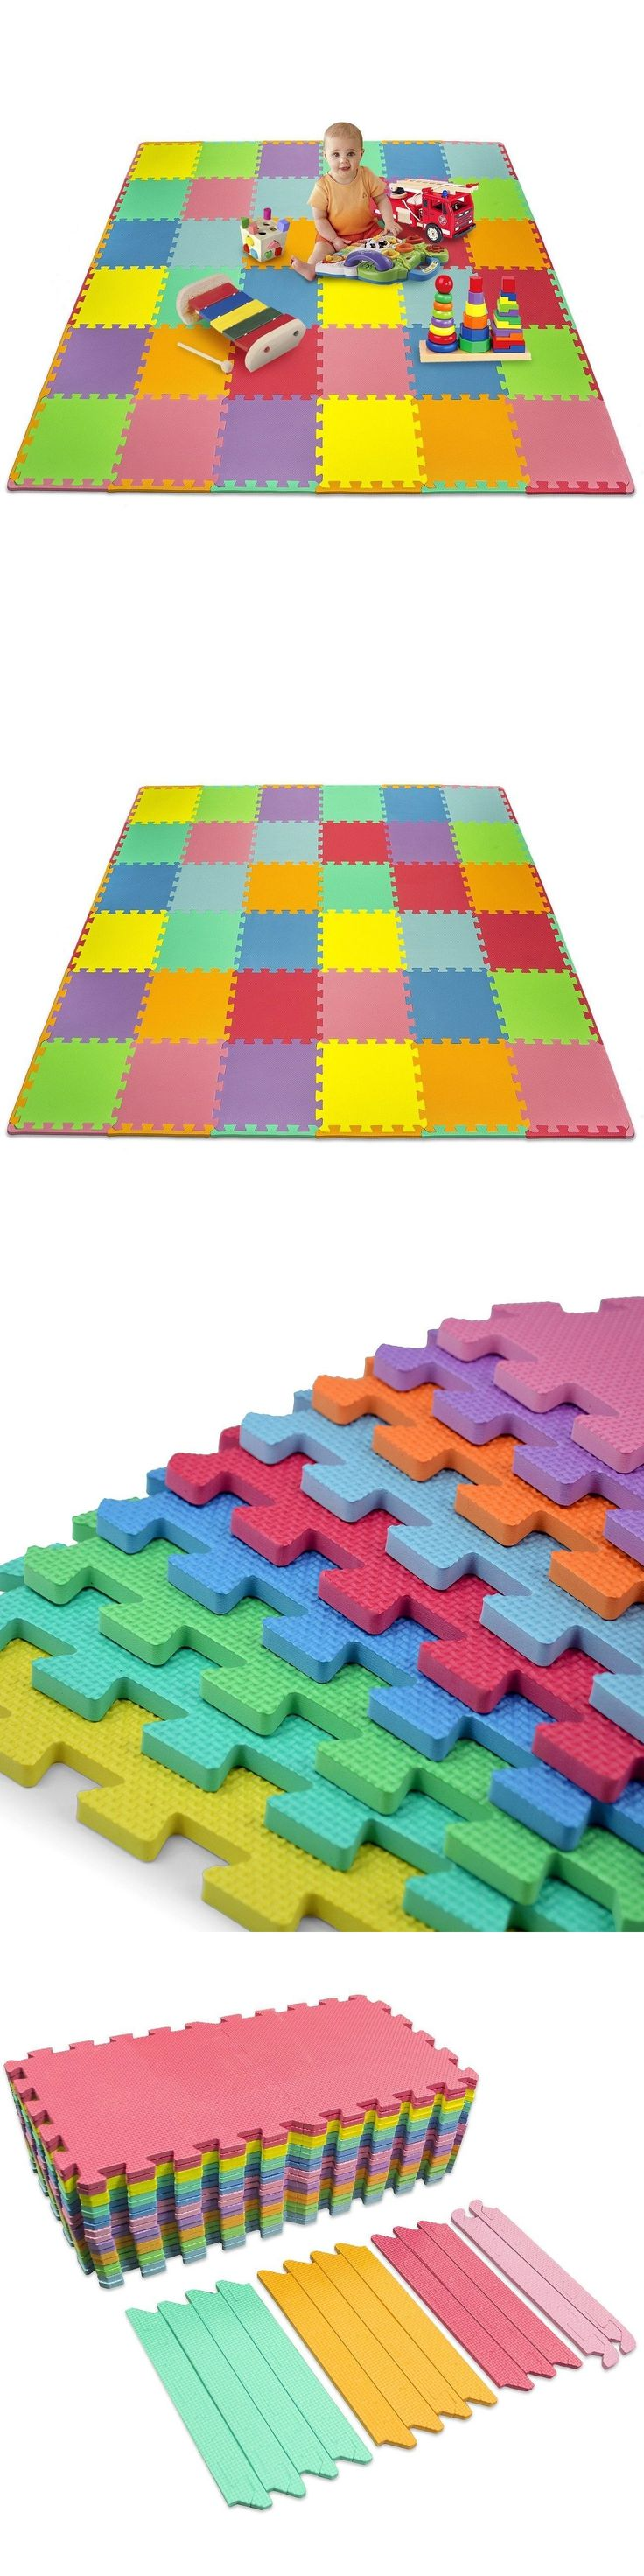 Rubber floor mats baby - Blocks Tiles And Mats 145931 Puzzle Mat For Kid Baby Play Foam Floor Best Playground